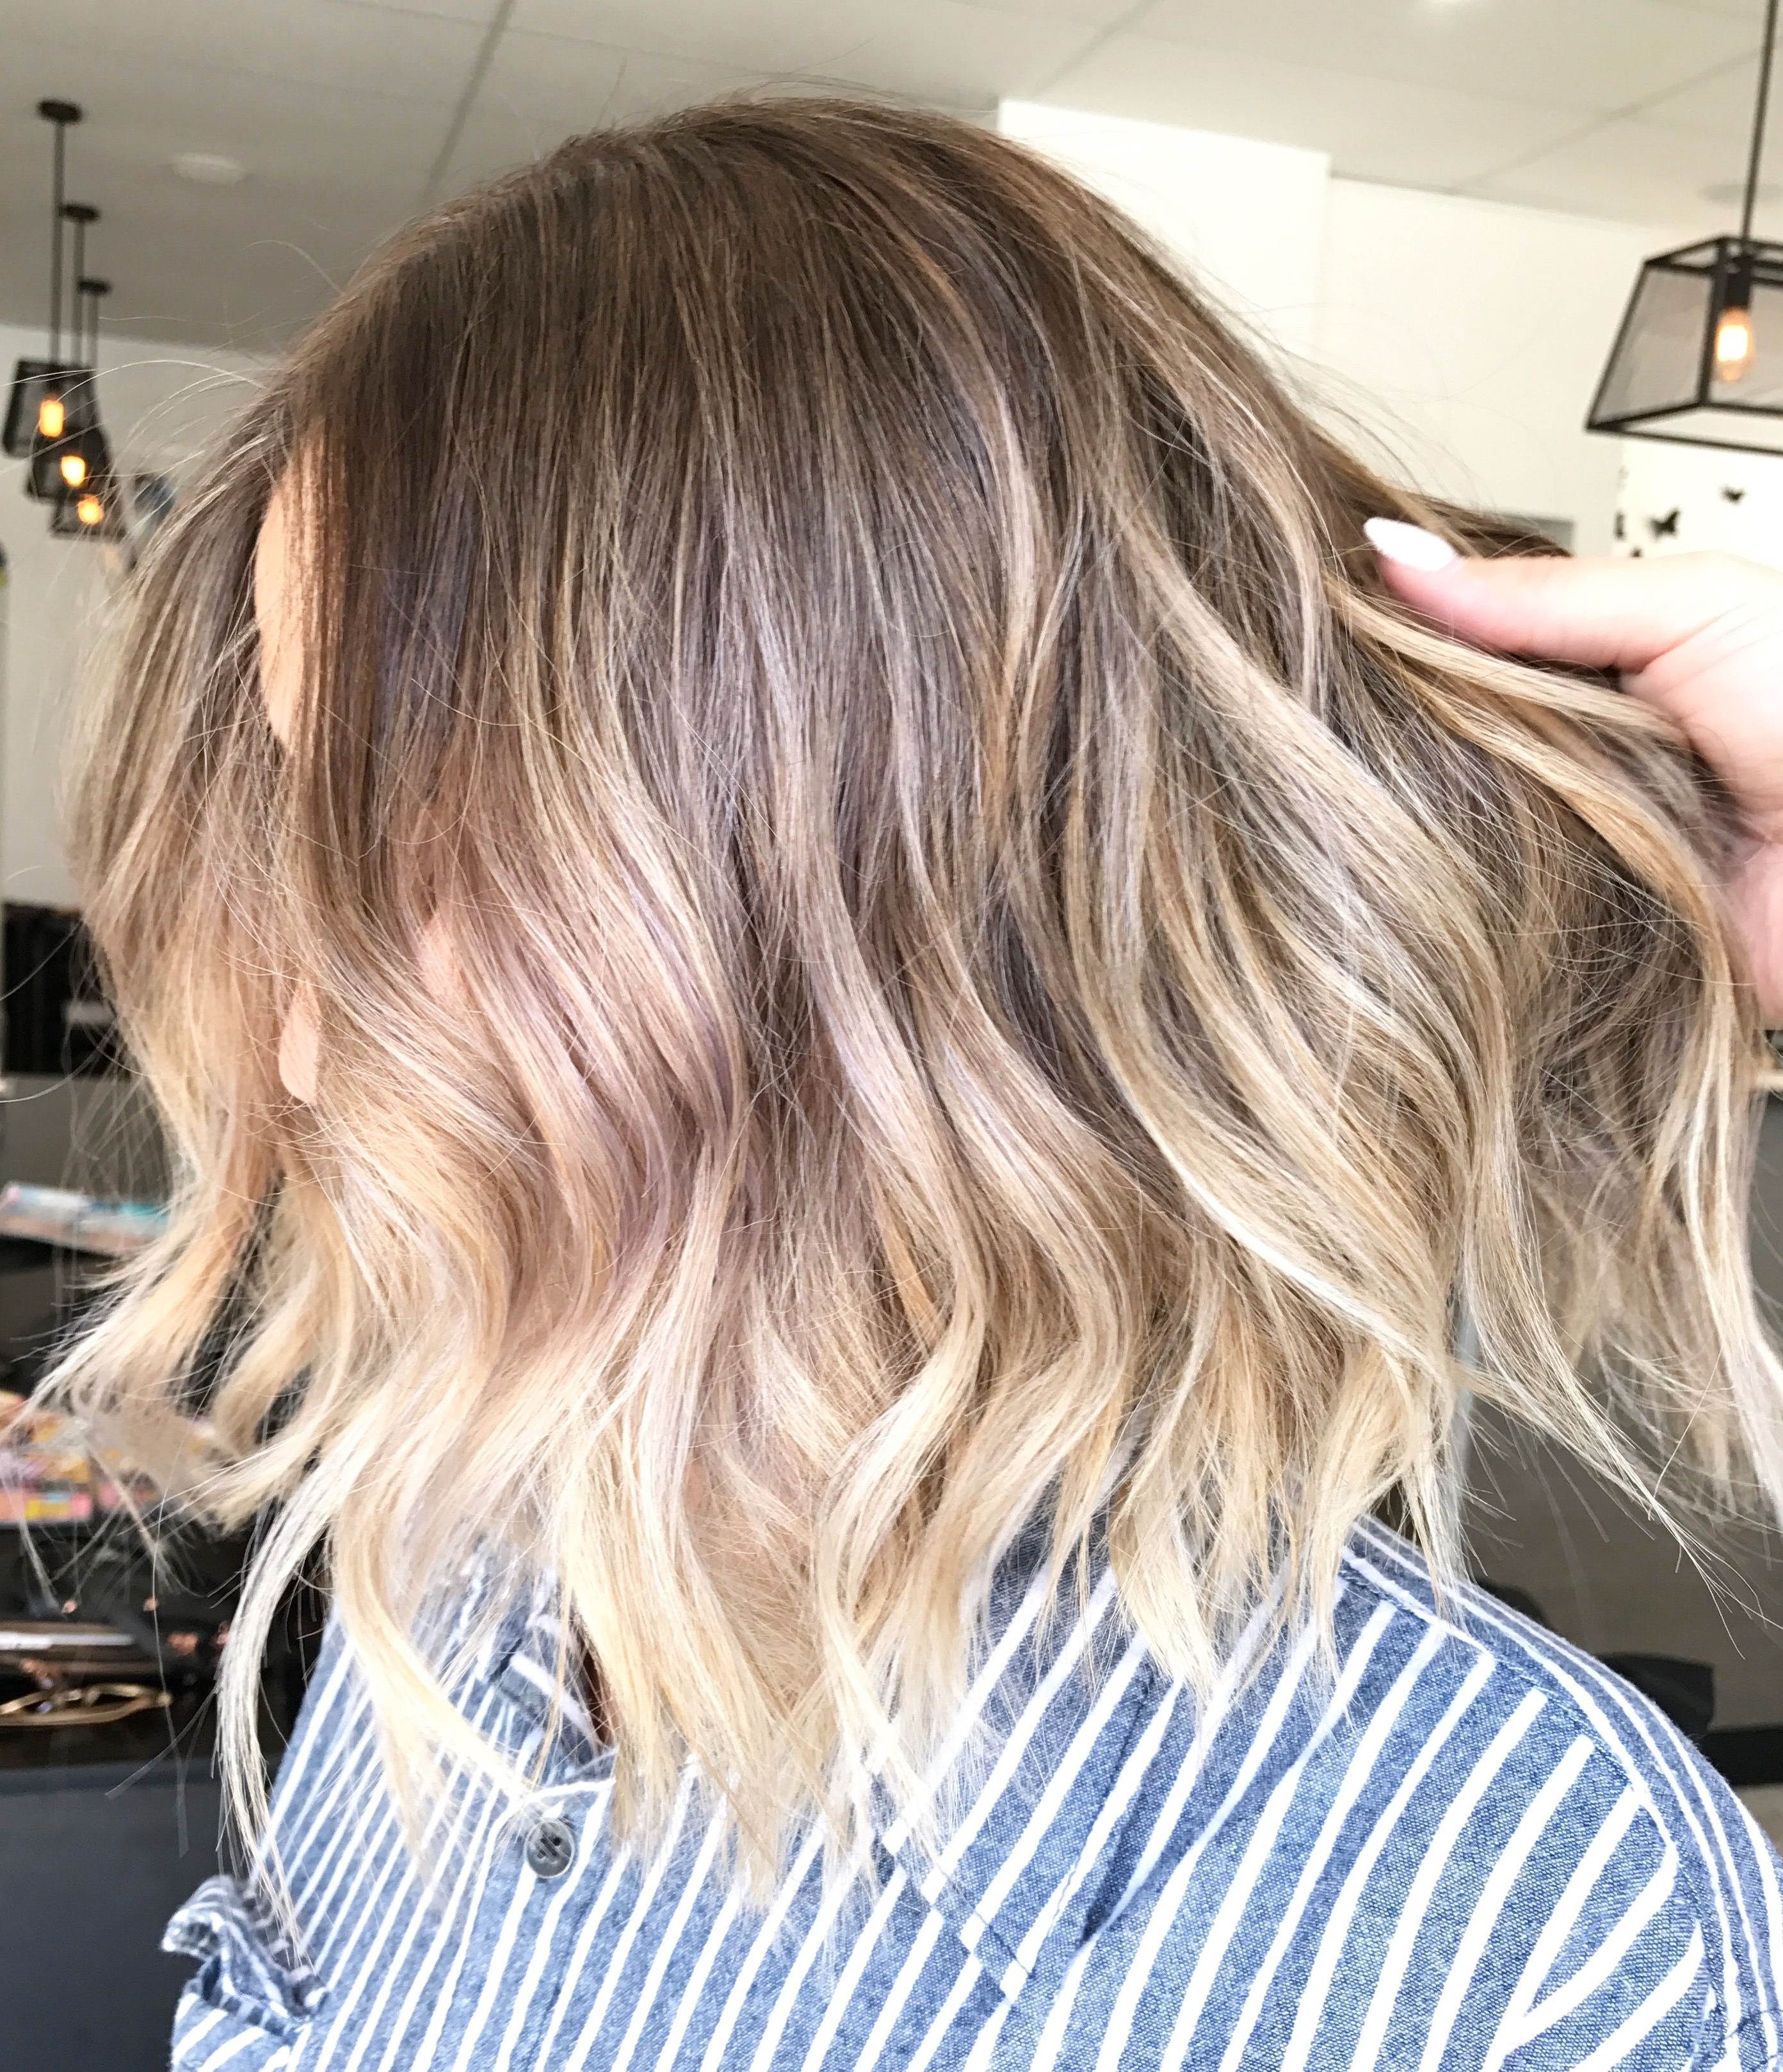 Blonde Balayage Short Lob Multidimensional Colour Lived In Hair For Well Liked Tousled Beach Babe Lob Blonde Hairstyles (View 5 of 20)